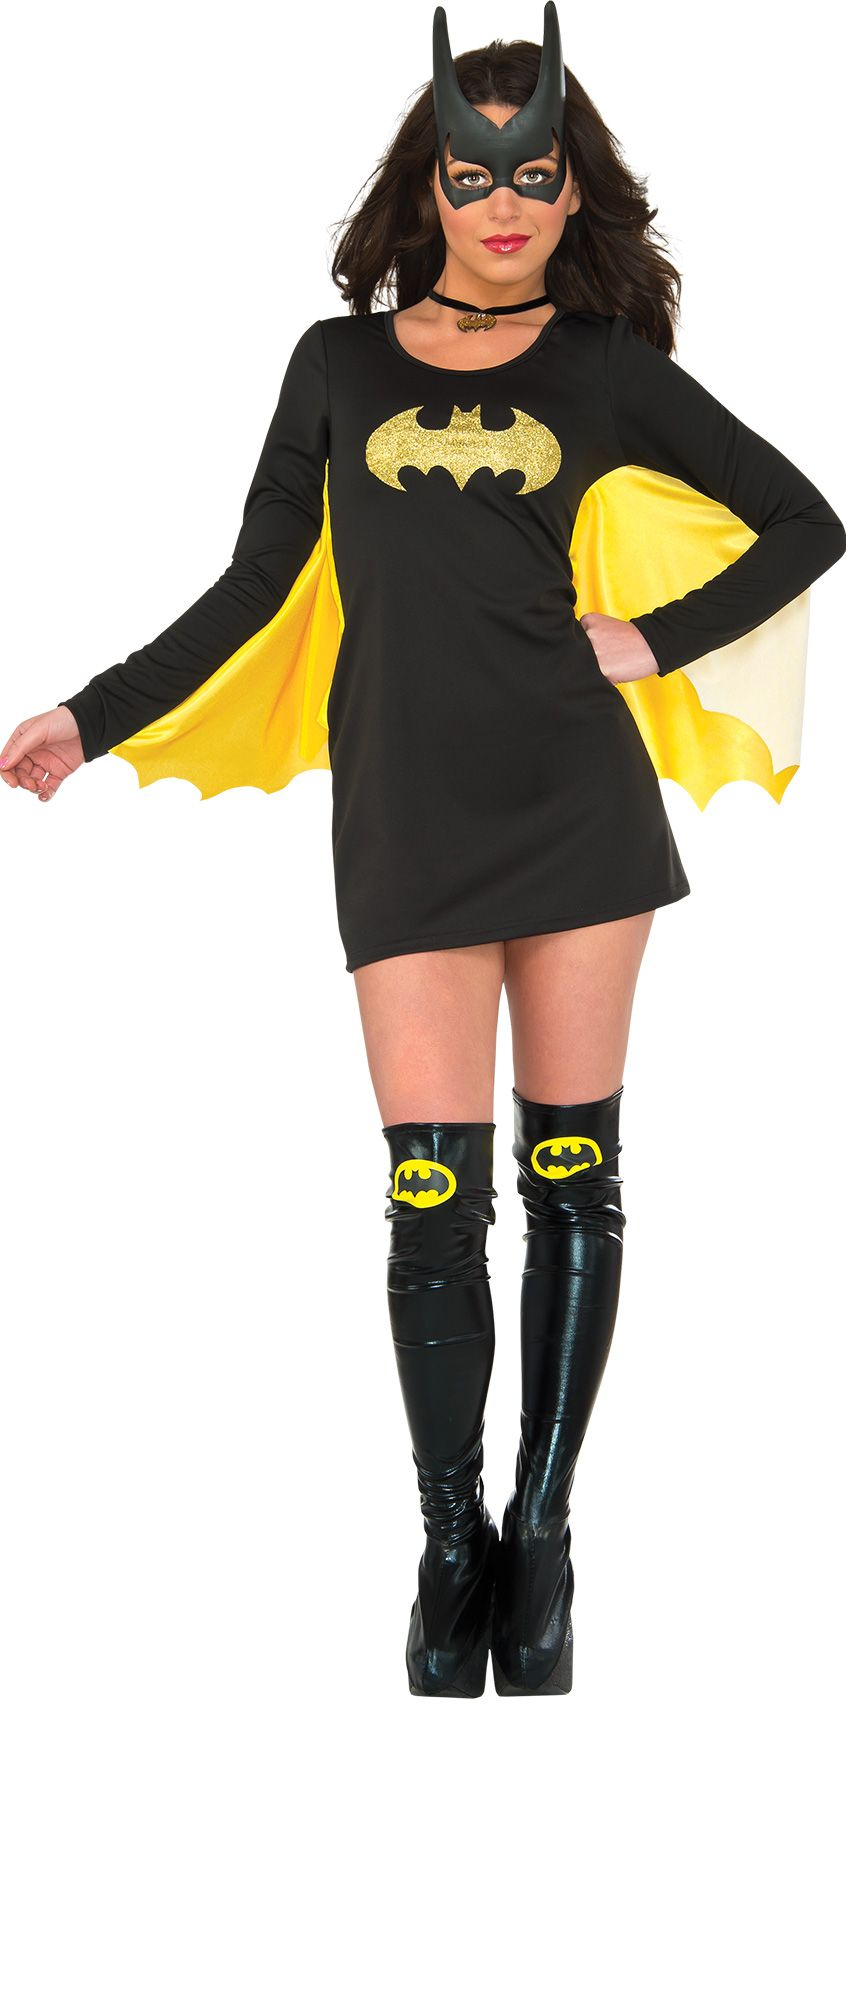 Women's Batgirl Costume Accessories - Party City Canada